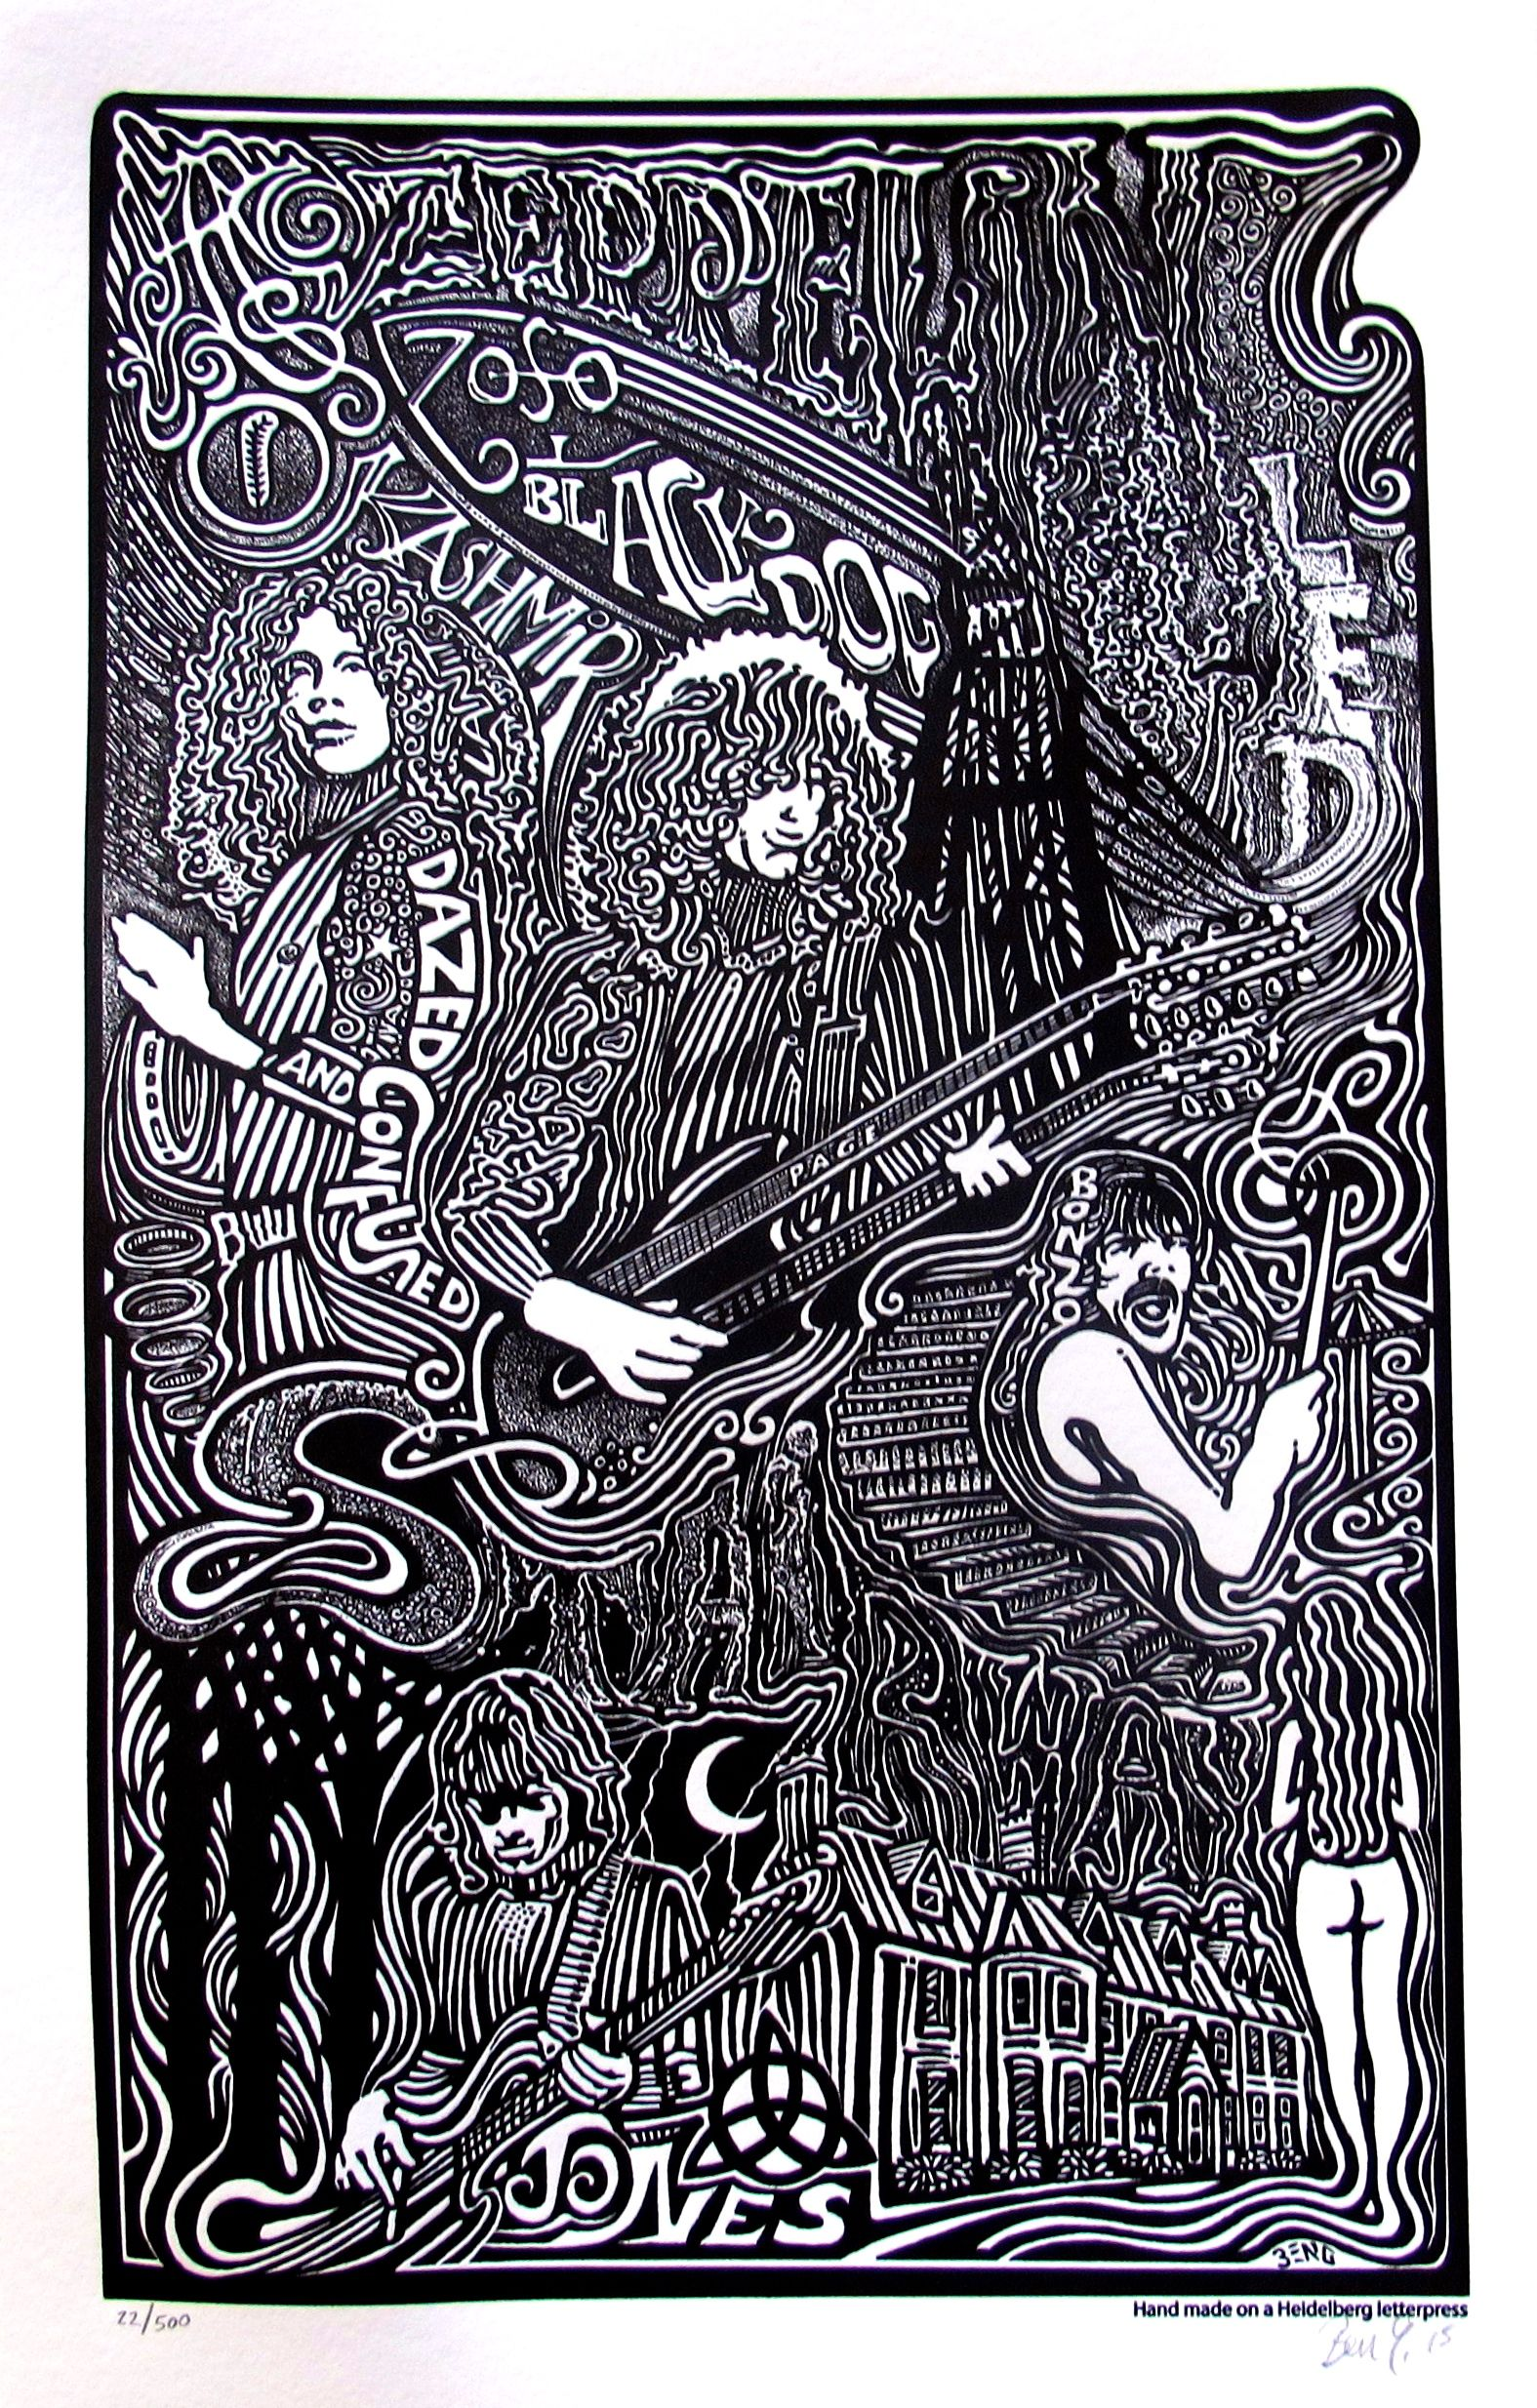 LED ZEPPELIN Psychedelic Hand Signed Posterography Letterpress ART